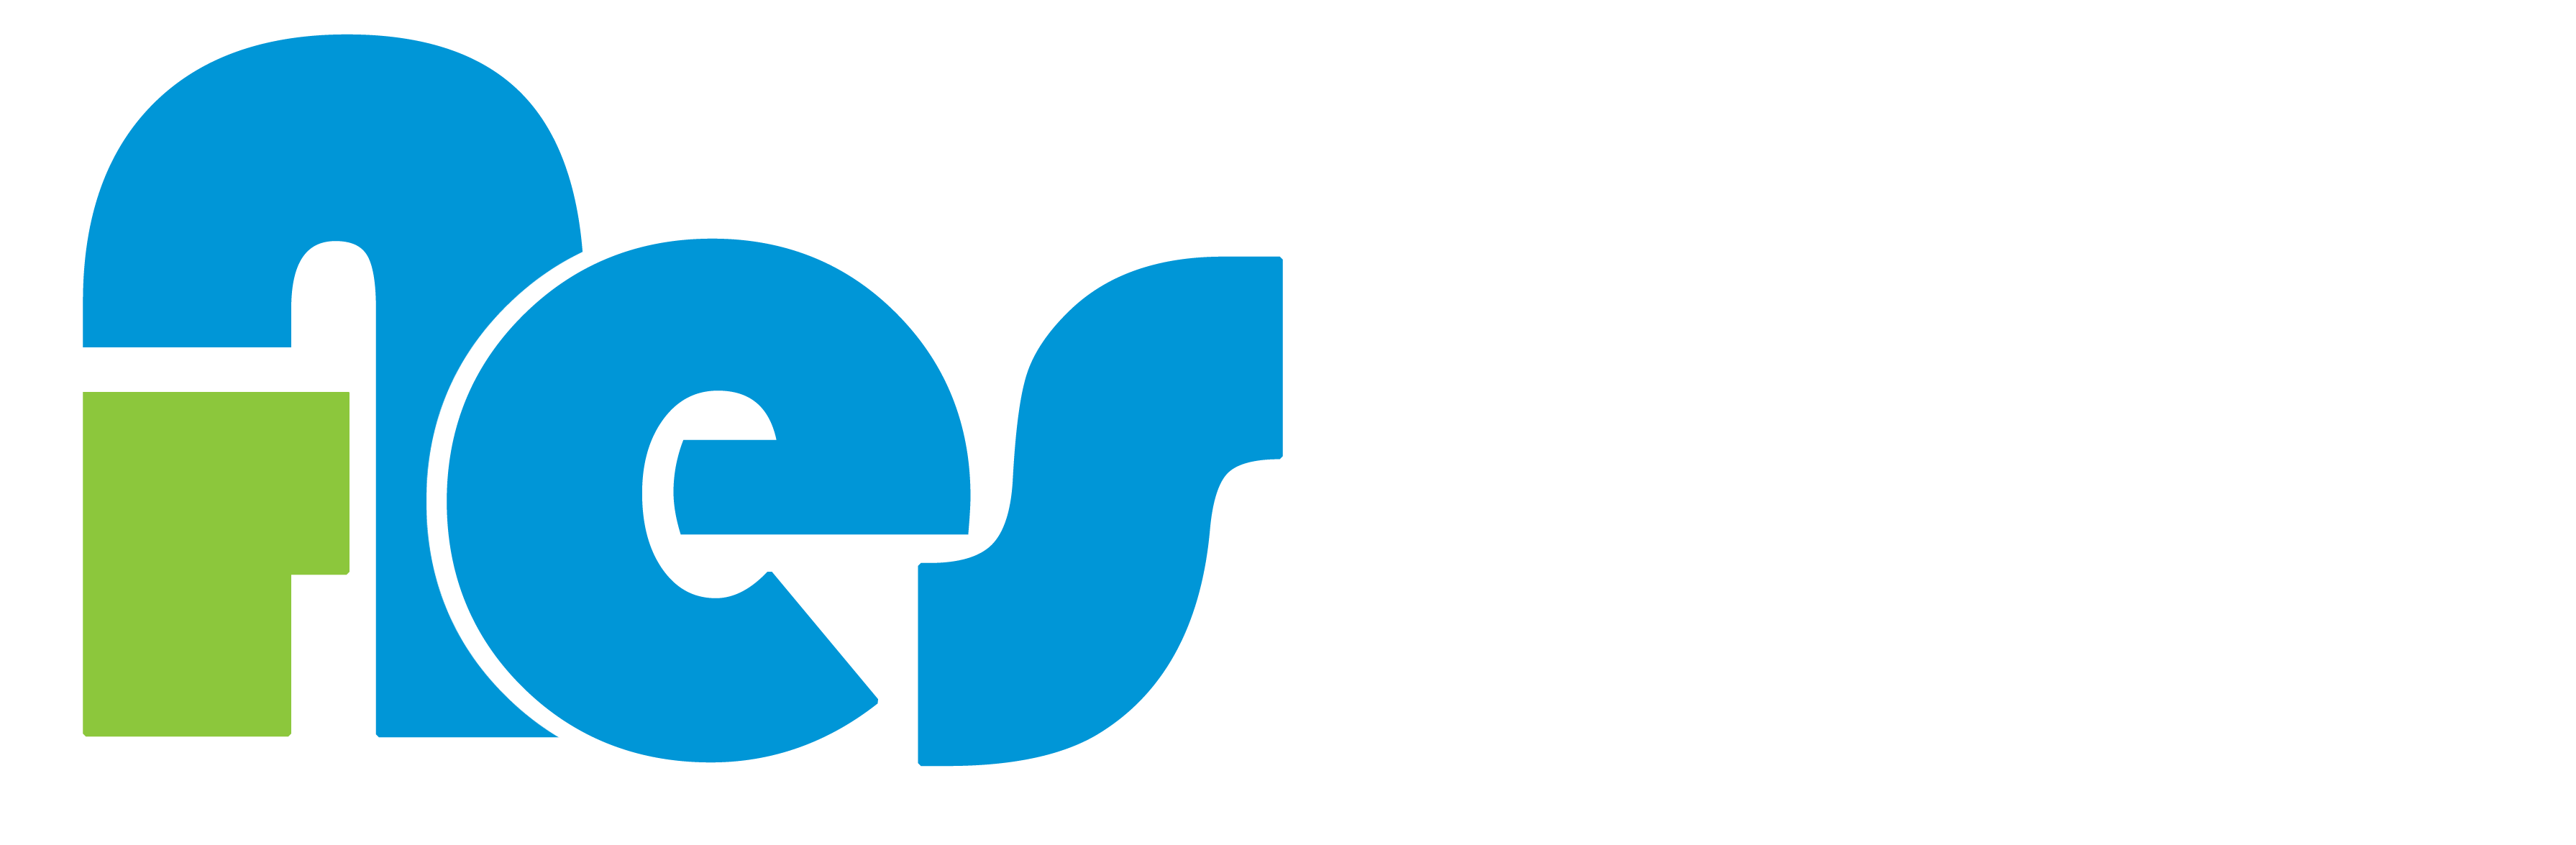 Ausway Education Services